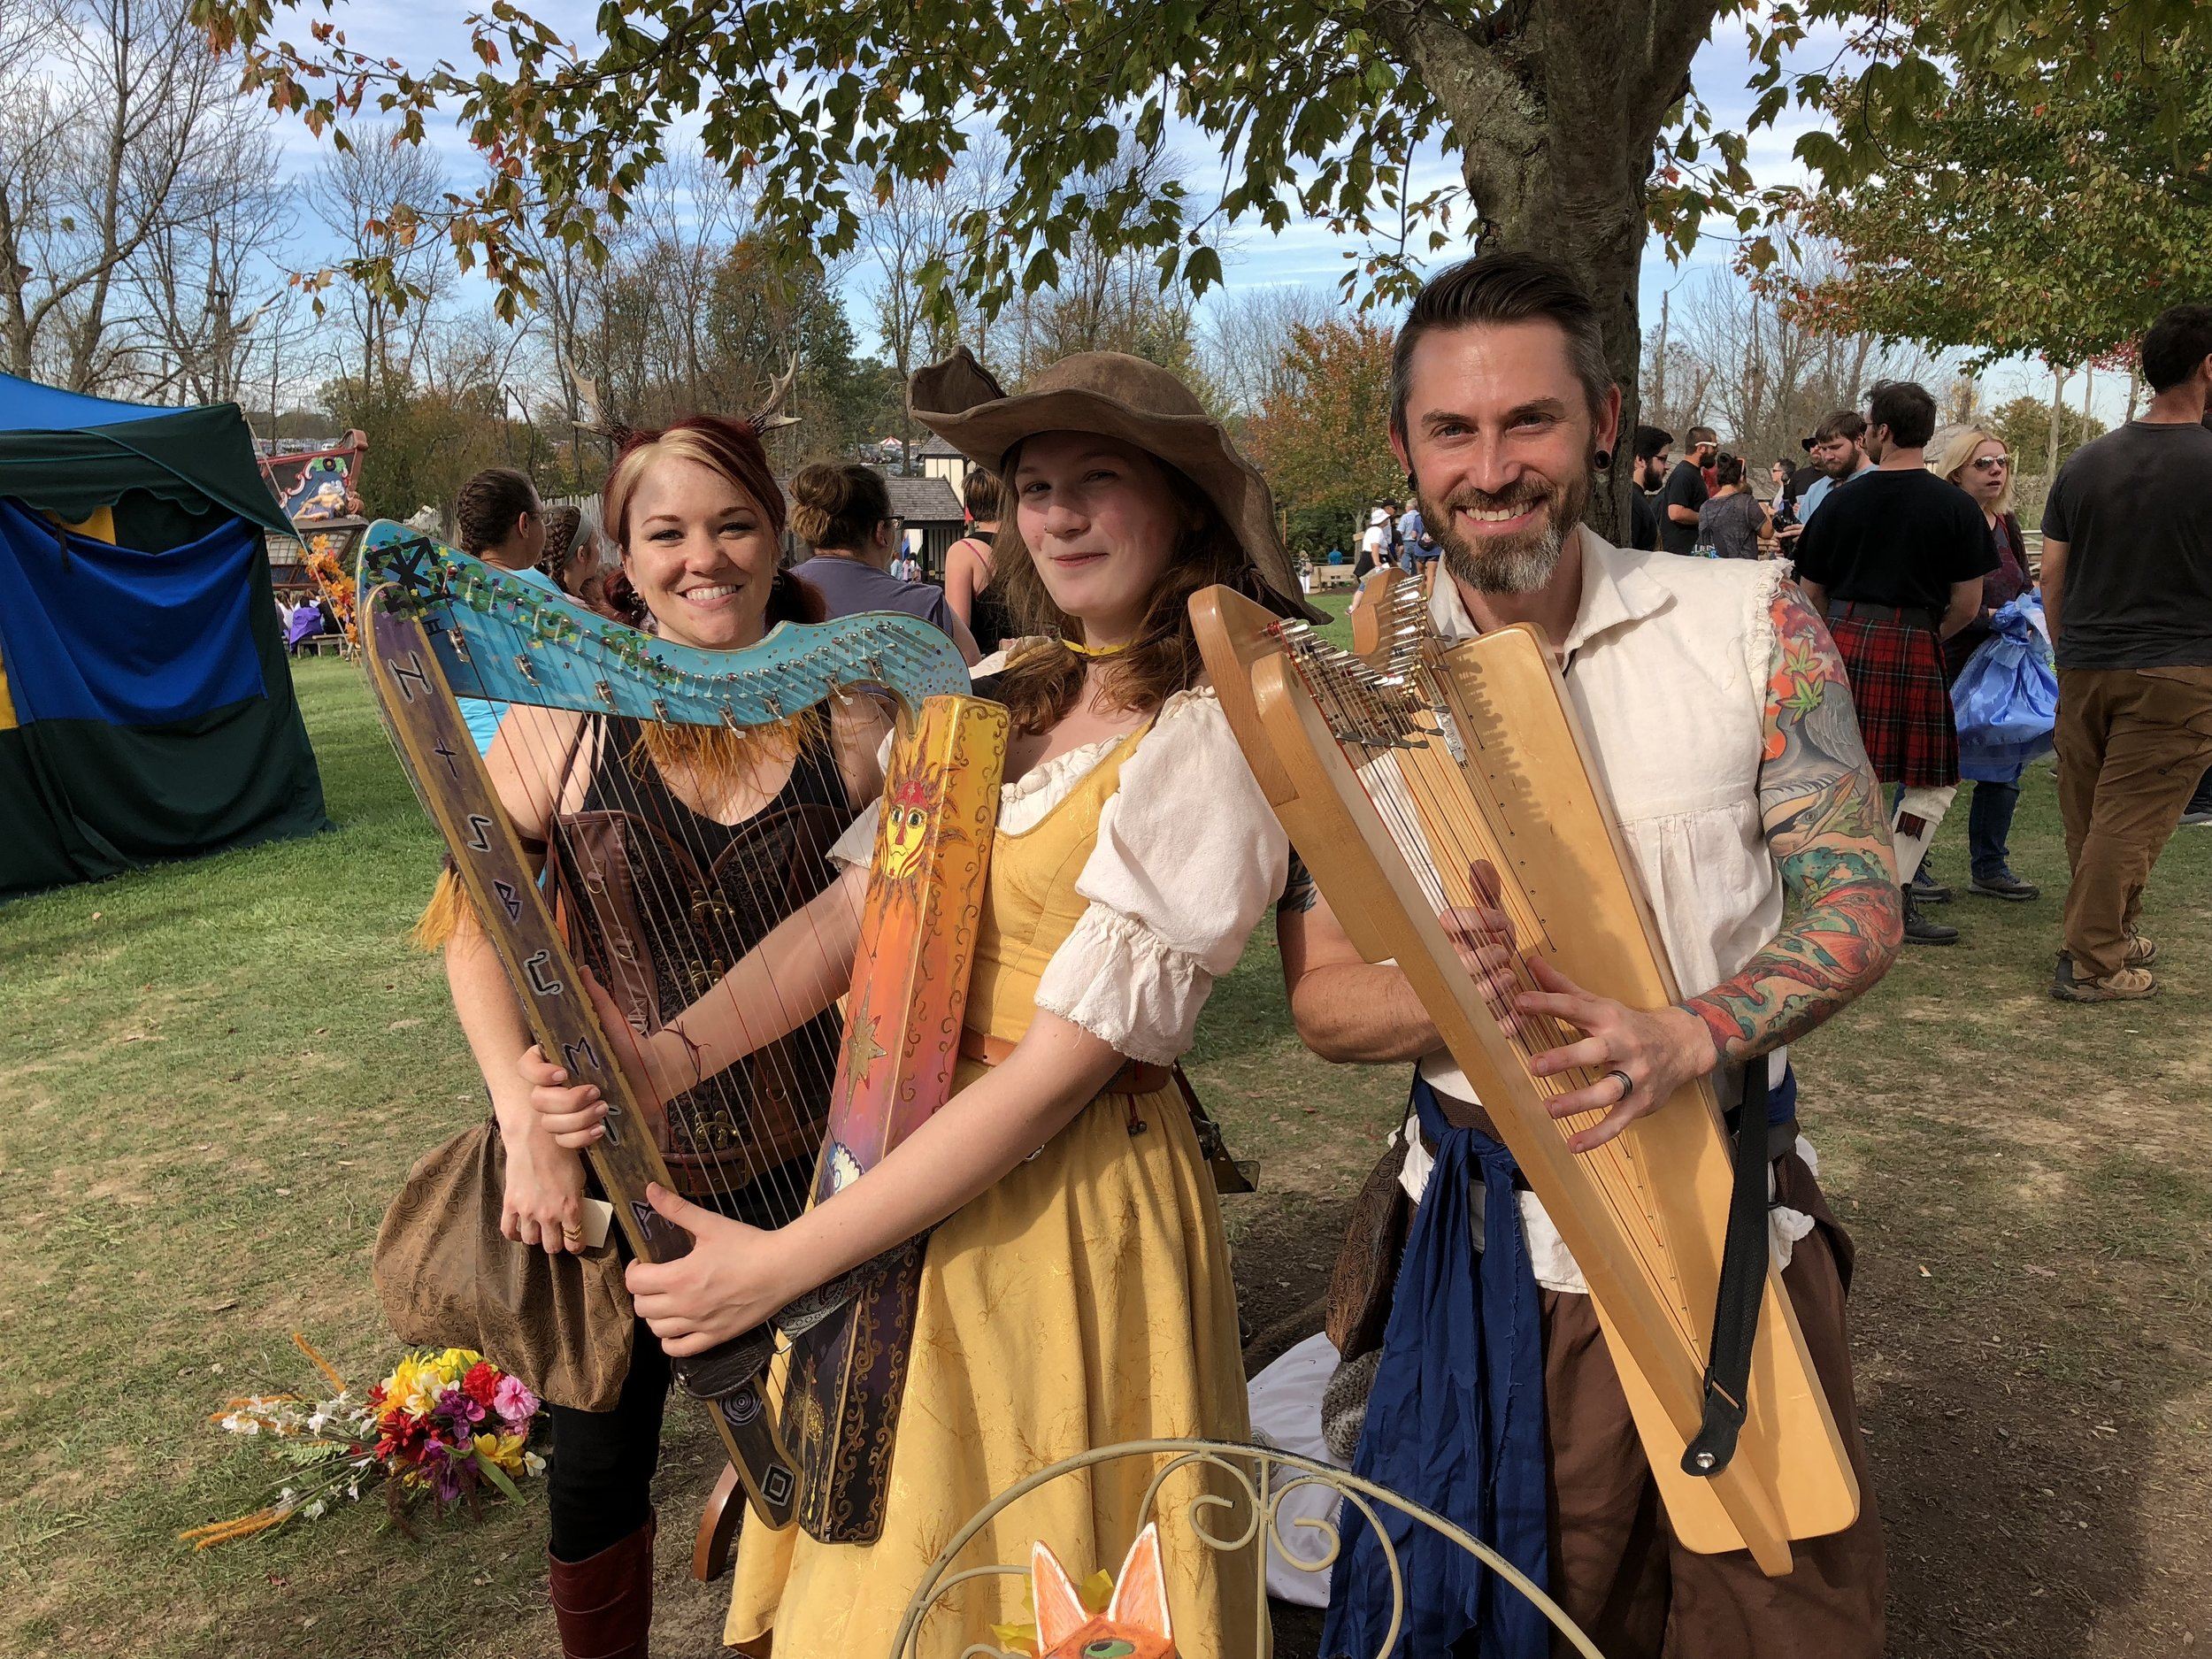 Melissa Irwin, Lilu Stocker & Garen Rees at the Ohio Renaissance Fair. Lilu decorated her Sharpsicle™ Harp herself!